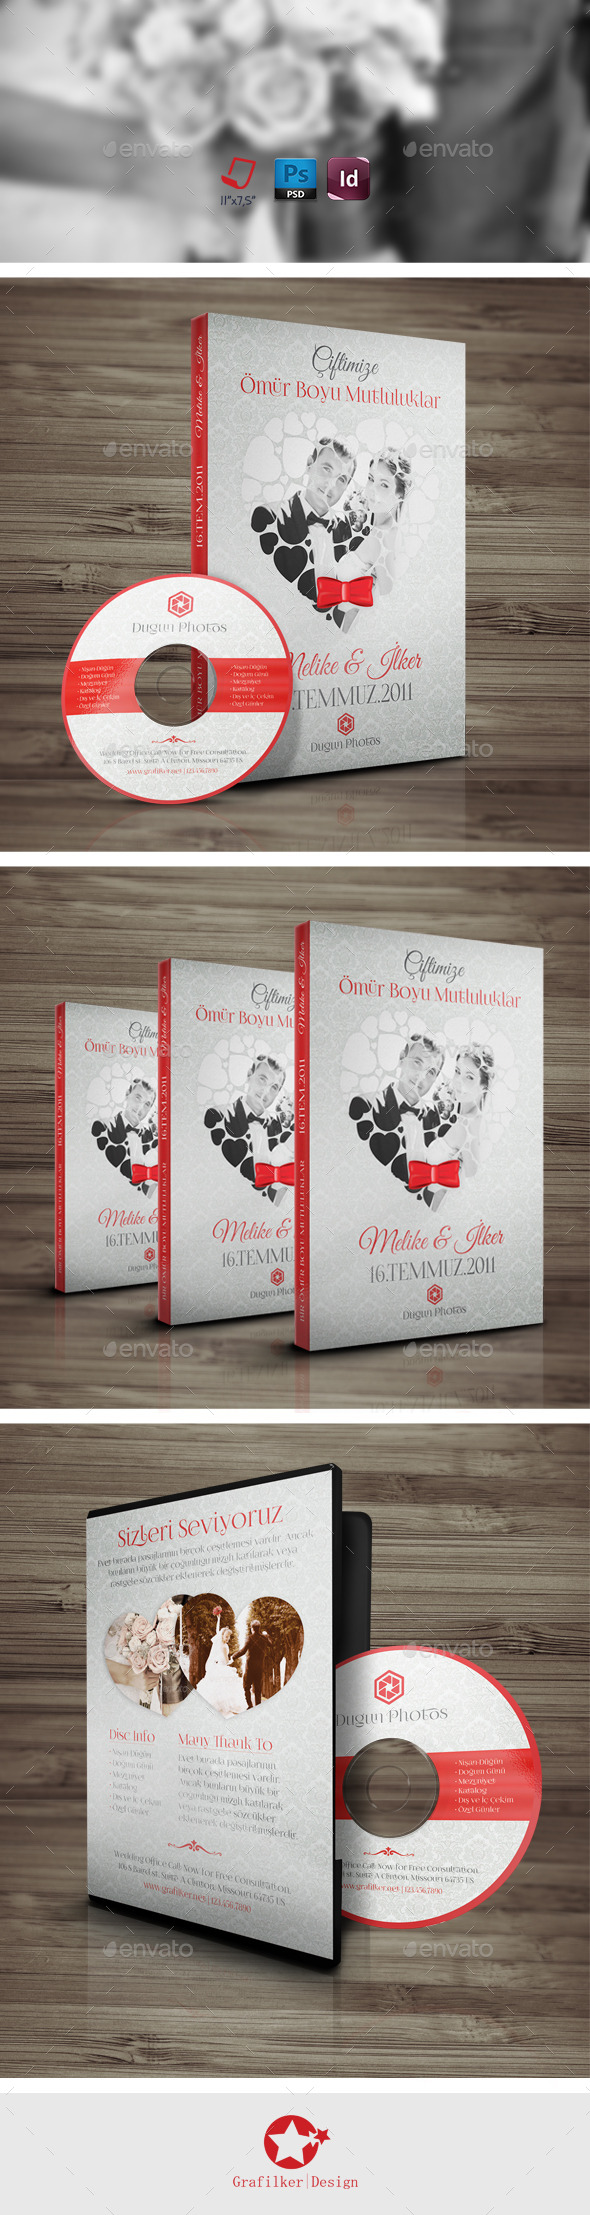 Wedding Dvd-Cd Cover Templates - CD & DVD Artwork Print Templates